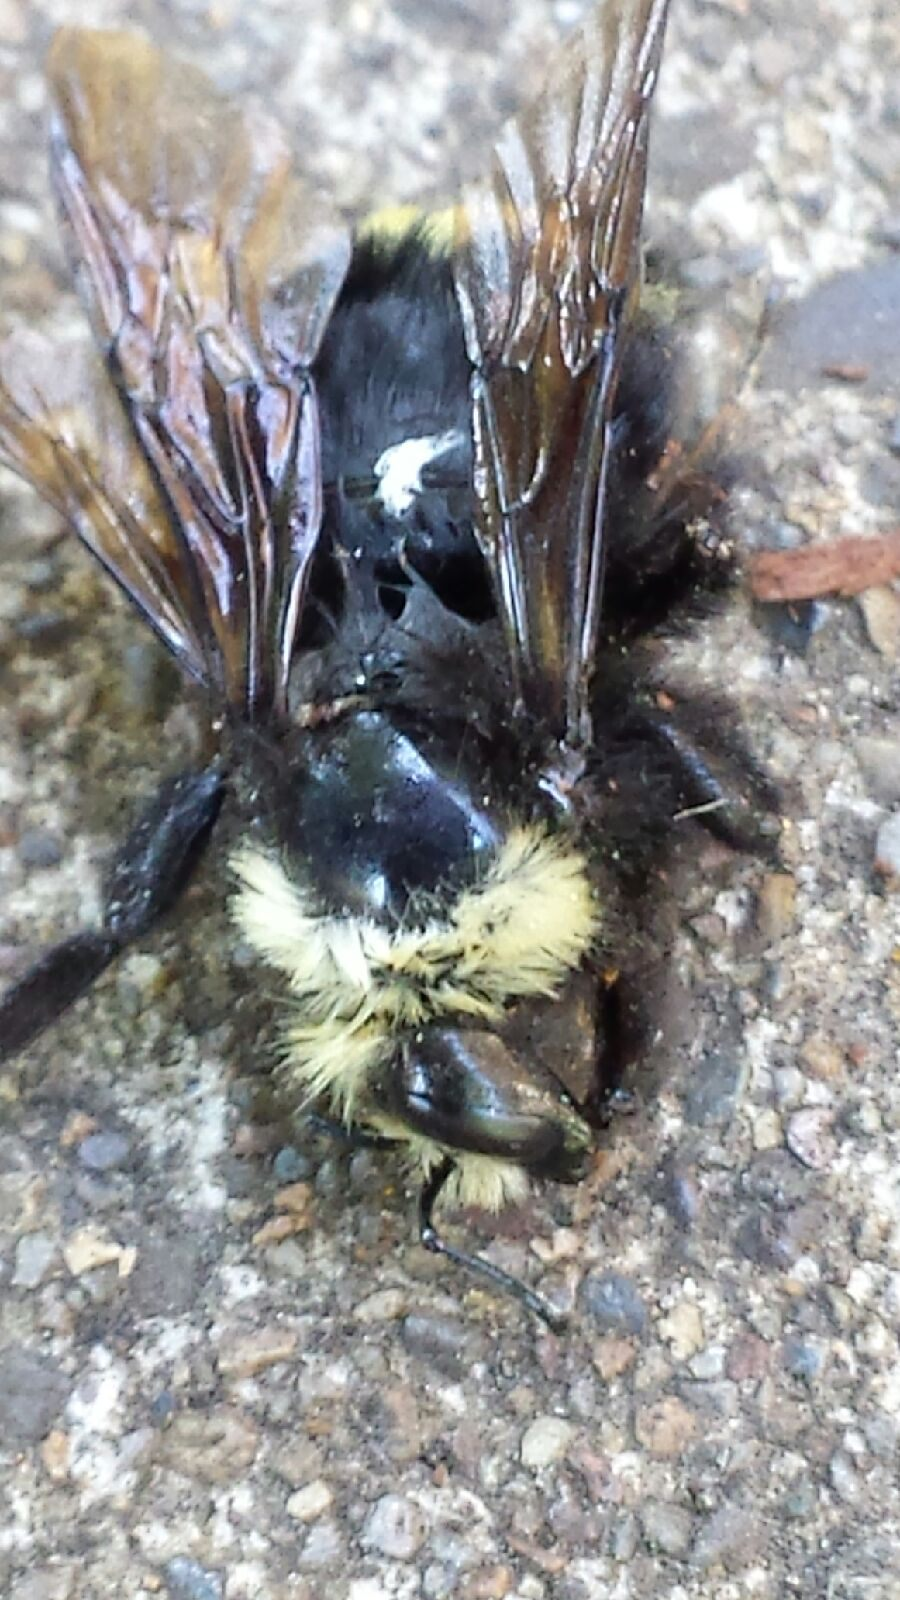 West Eugene bumble bee dead after neonic spray